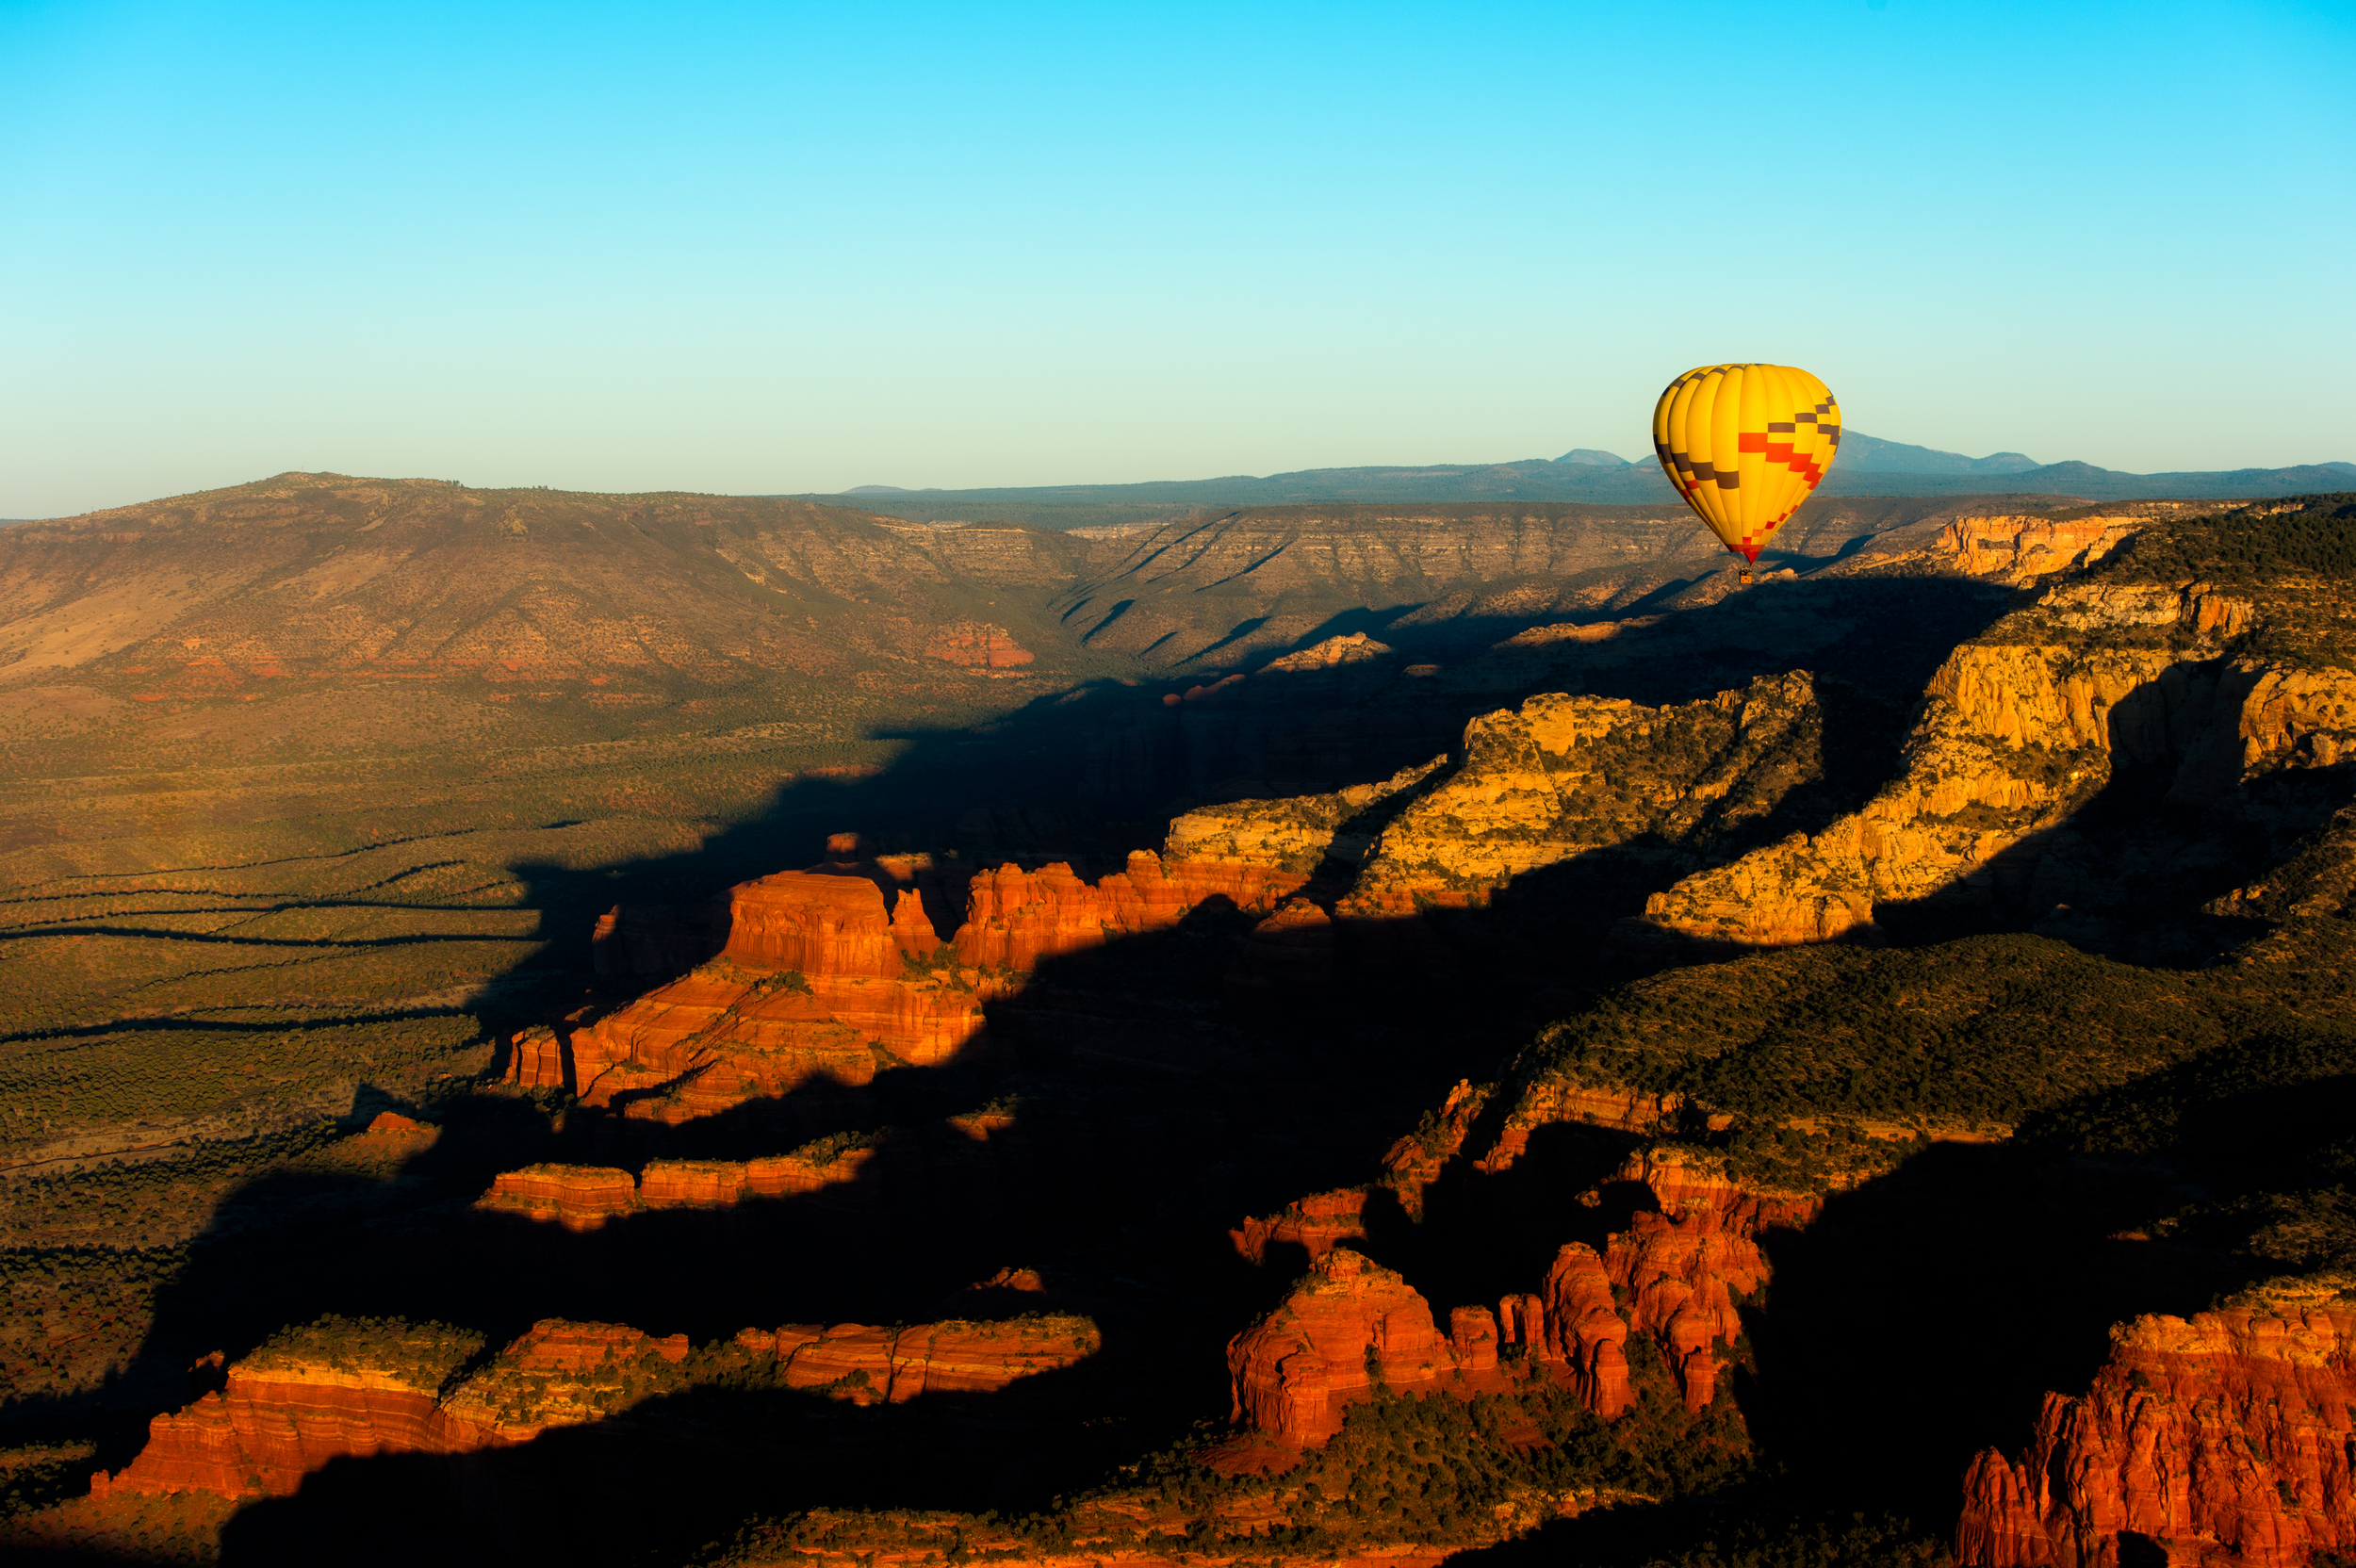 Quite a few balloons were in our view, but they just enhanced and gave scale to the vistas